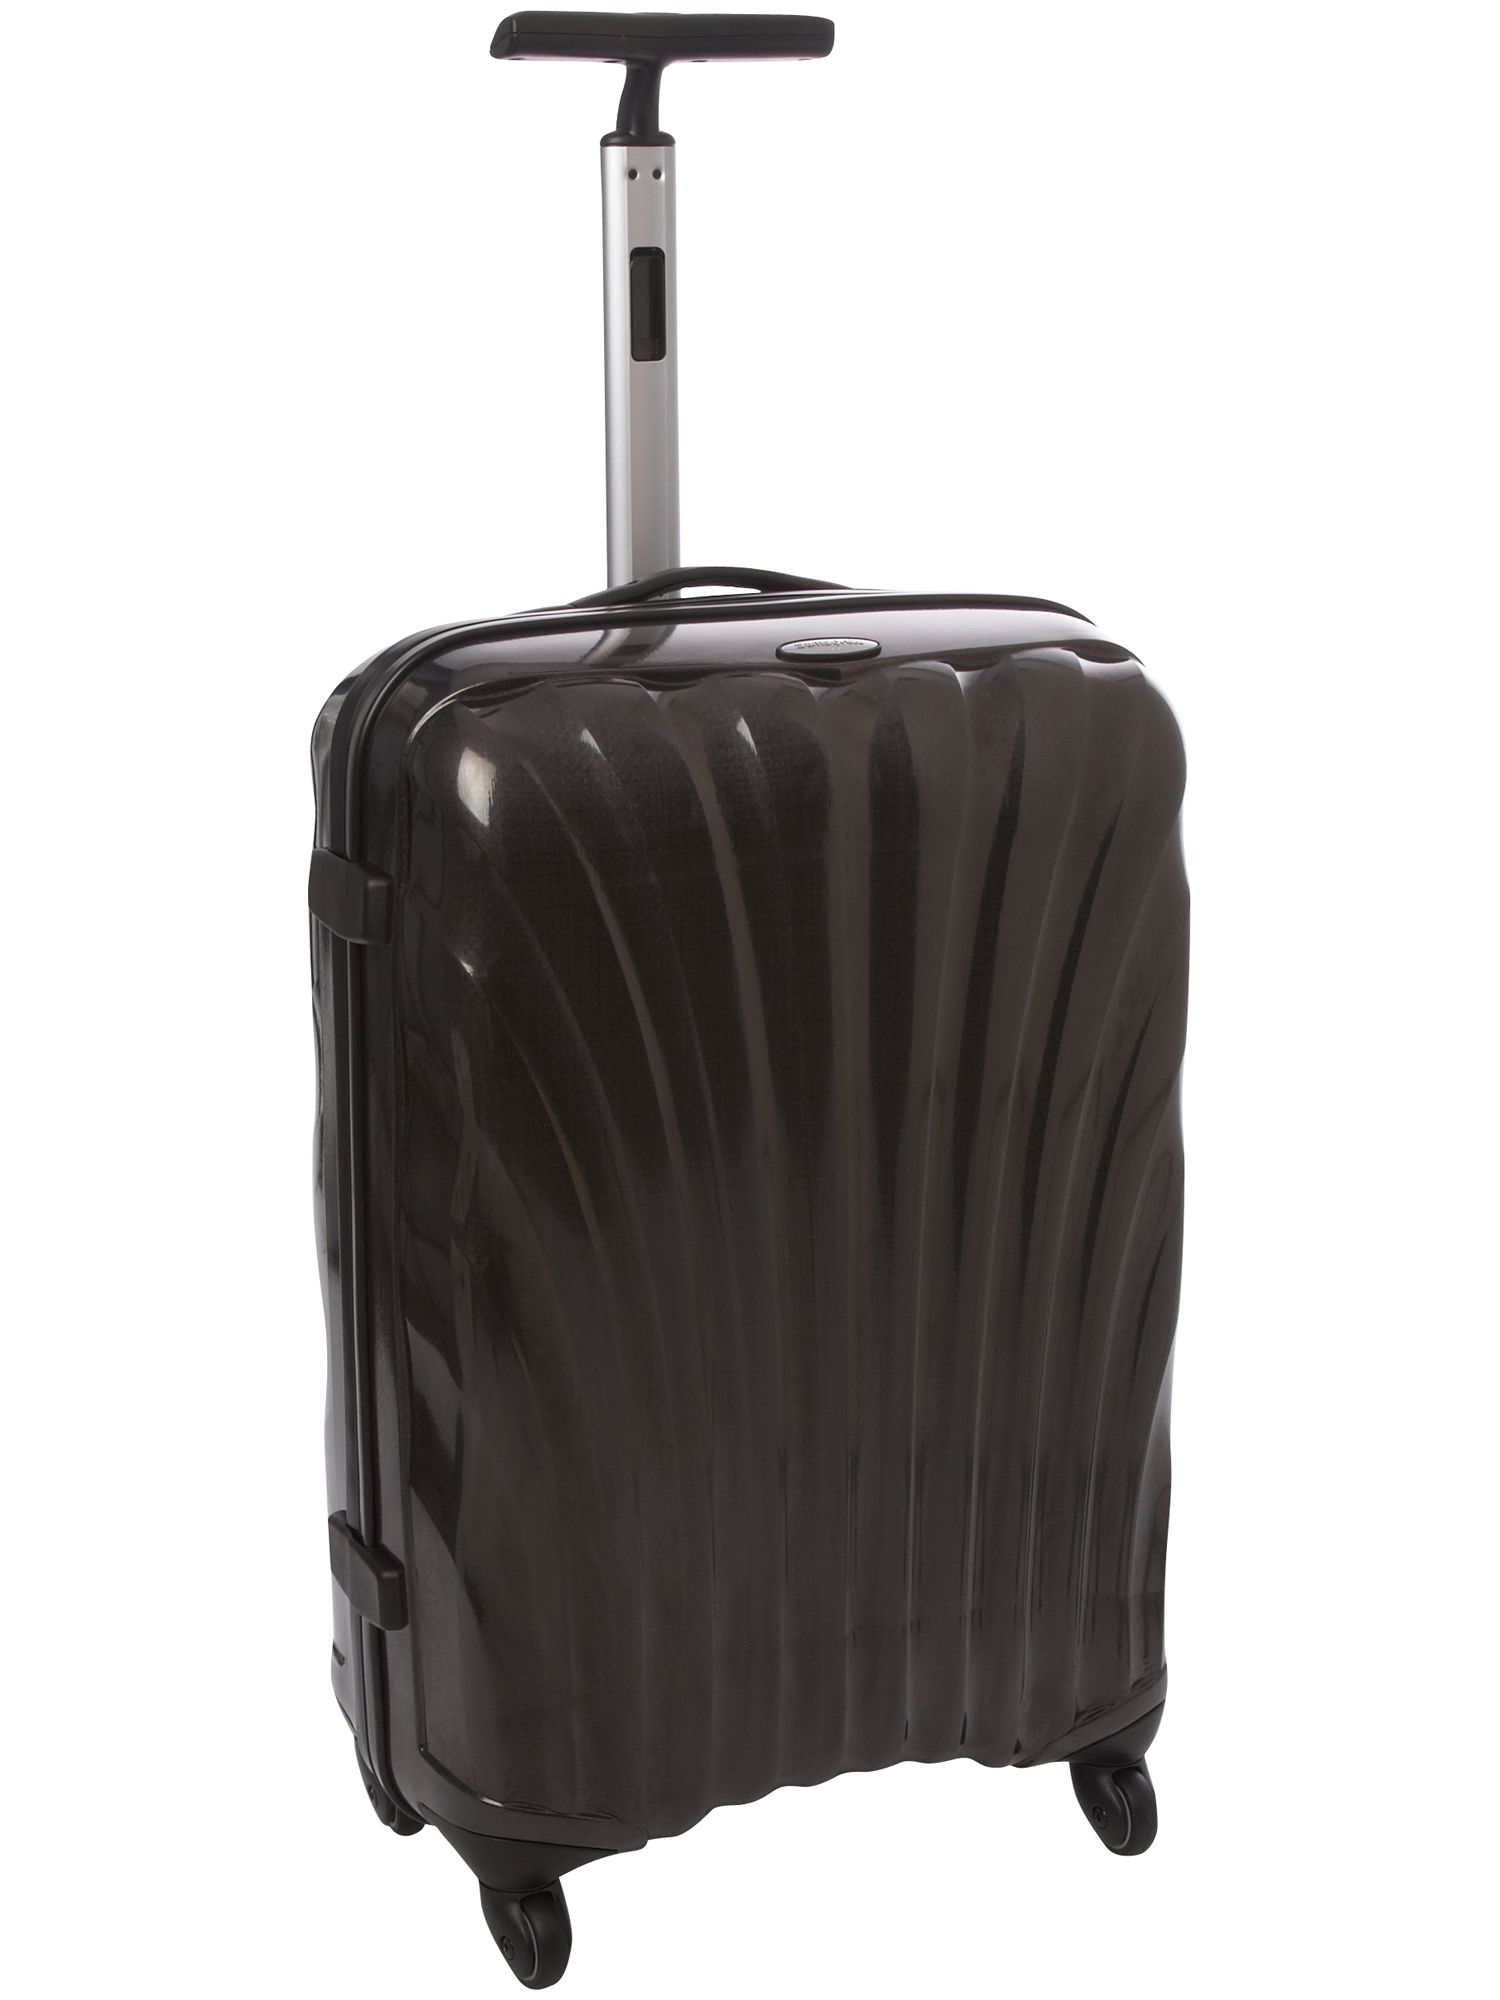 Cosmolite black 68cm 4 wheel case